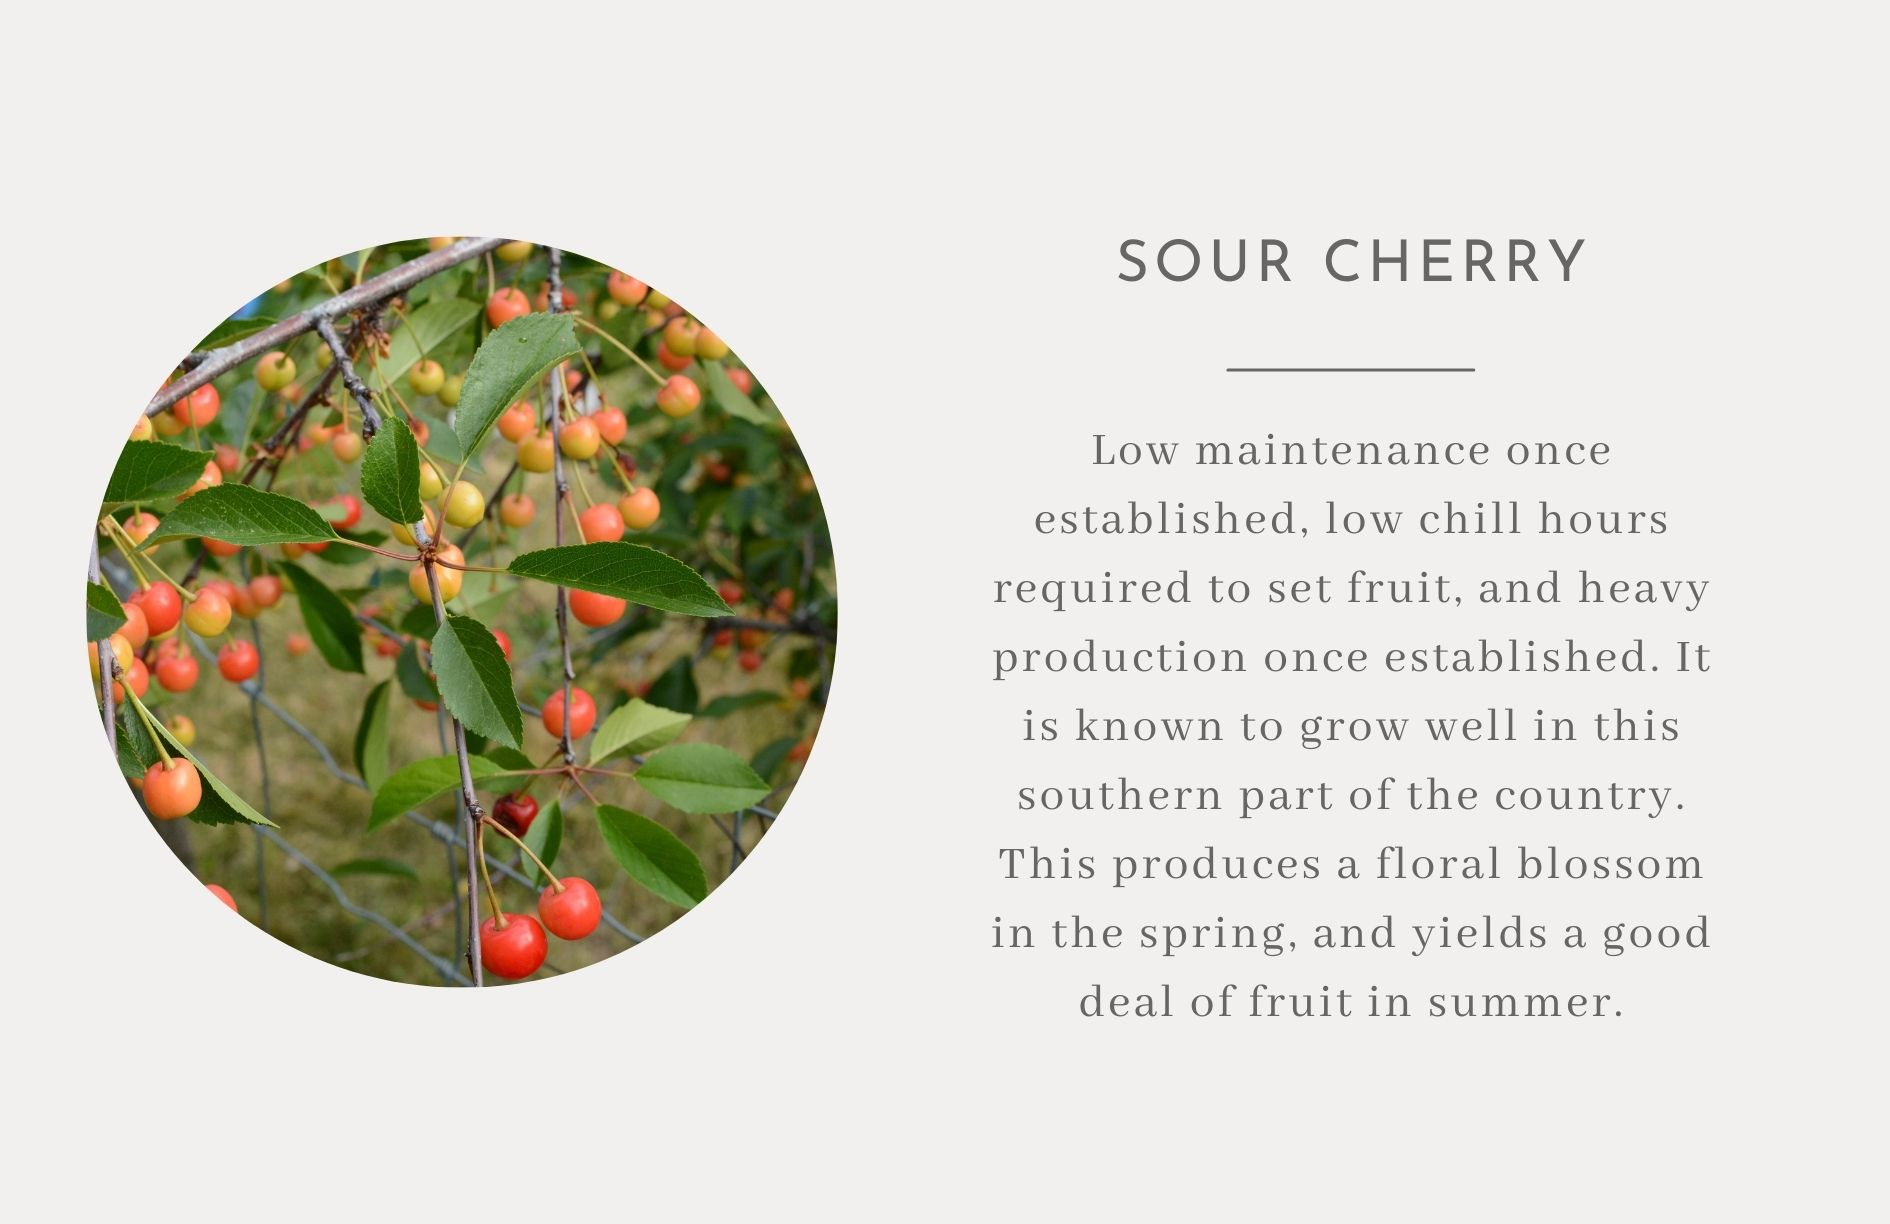 Sour Cherry - Edible trees and bushes